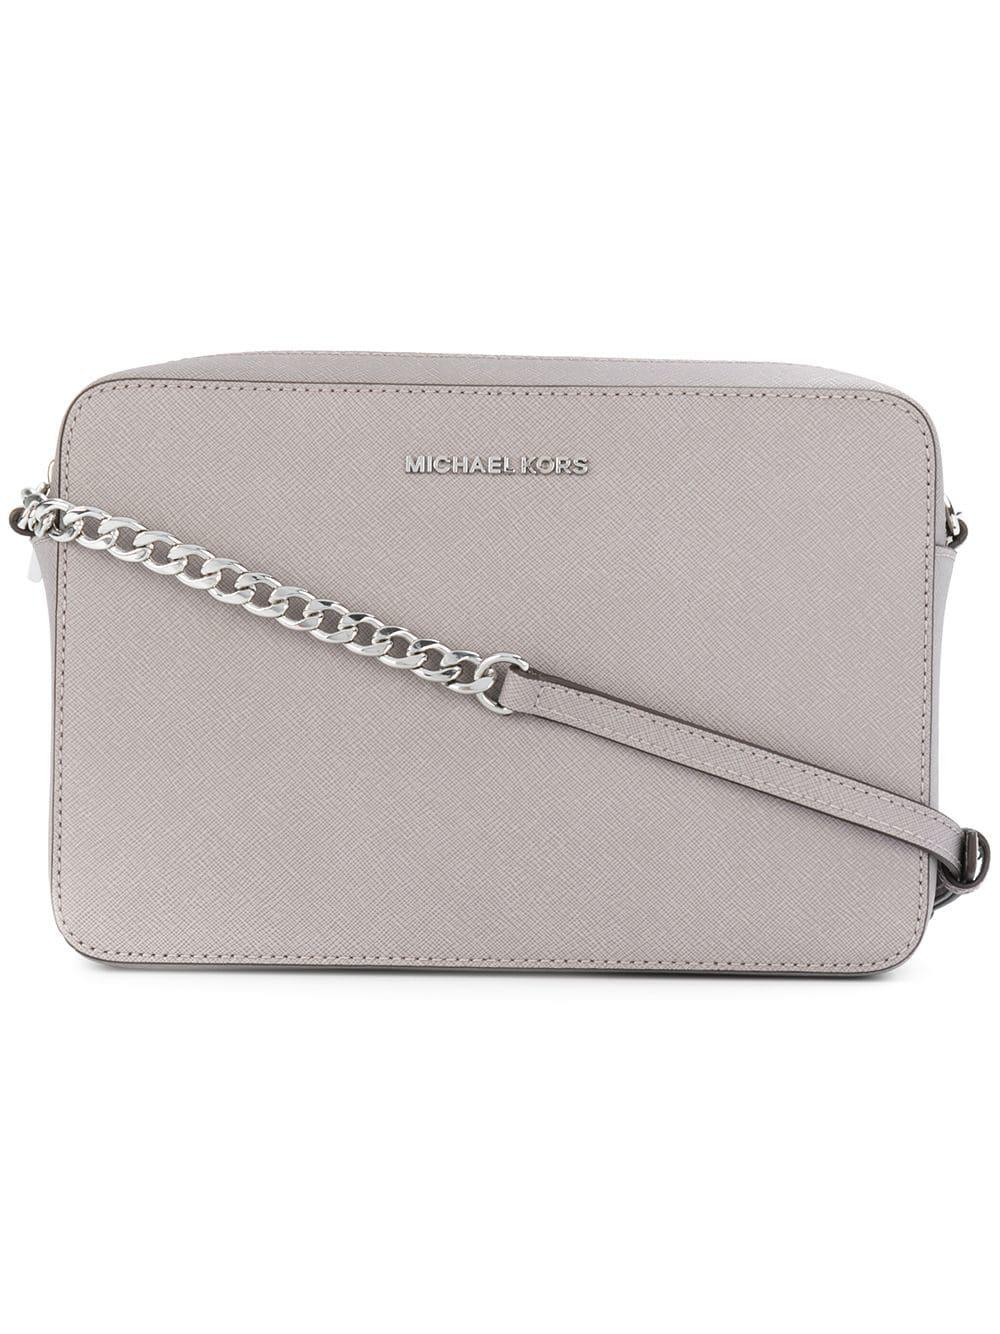 Lyst - Michael Michael Kors Leather Crossbody Bag in Gray 5adeb35b5b816